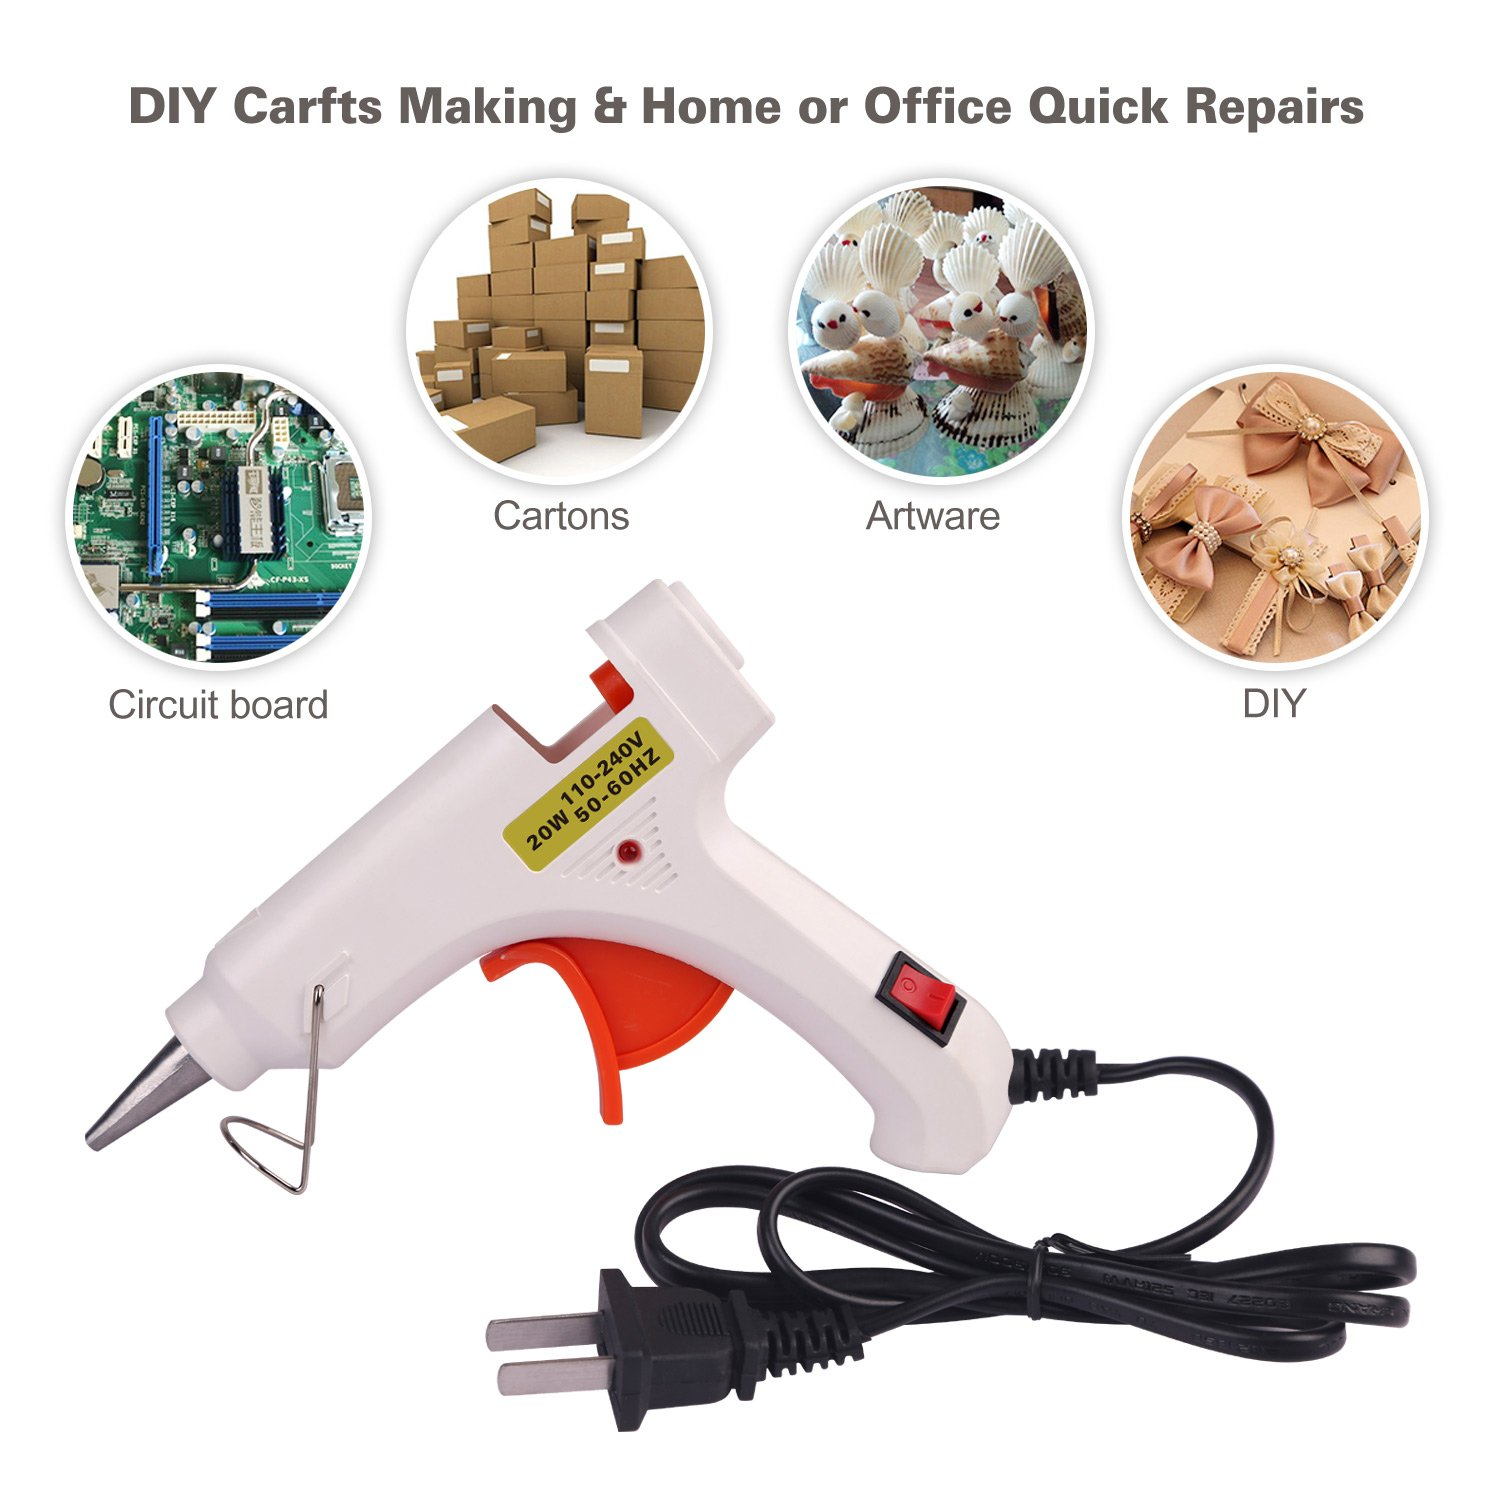 Hot Melt Glue gun with 30 pcs free glue sticks, High temperature melting glue gun with safety stand and built in fuse for over heat protection for small craft projects, home, office and quick repair by FLY5D (Image #2)